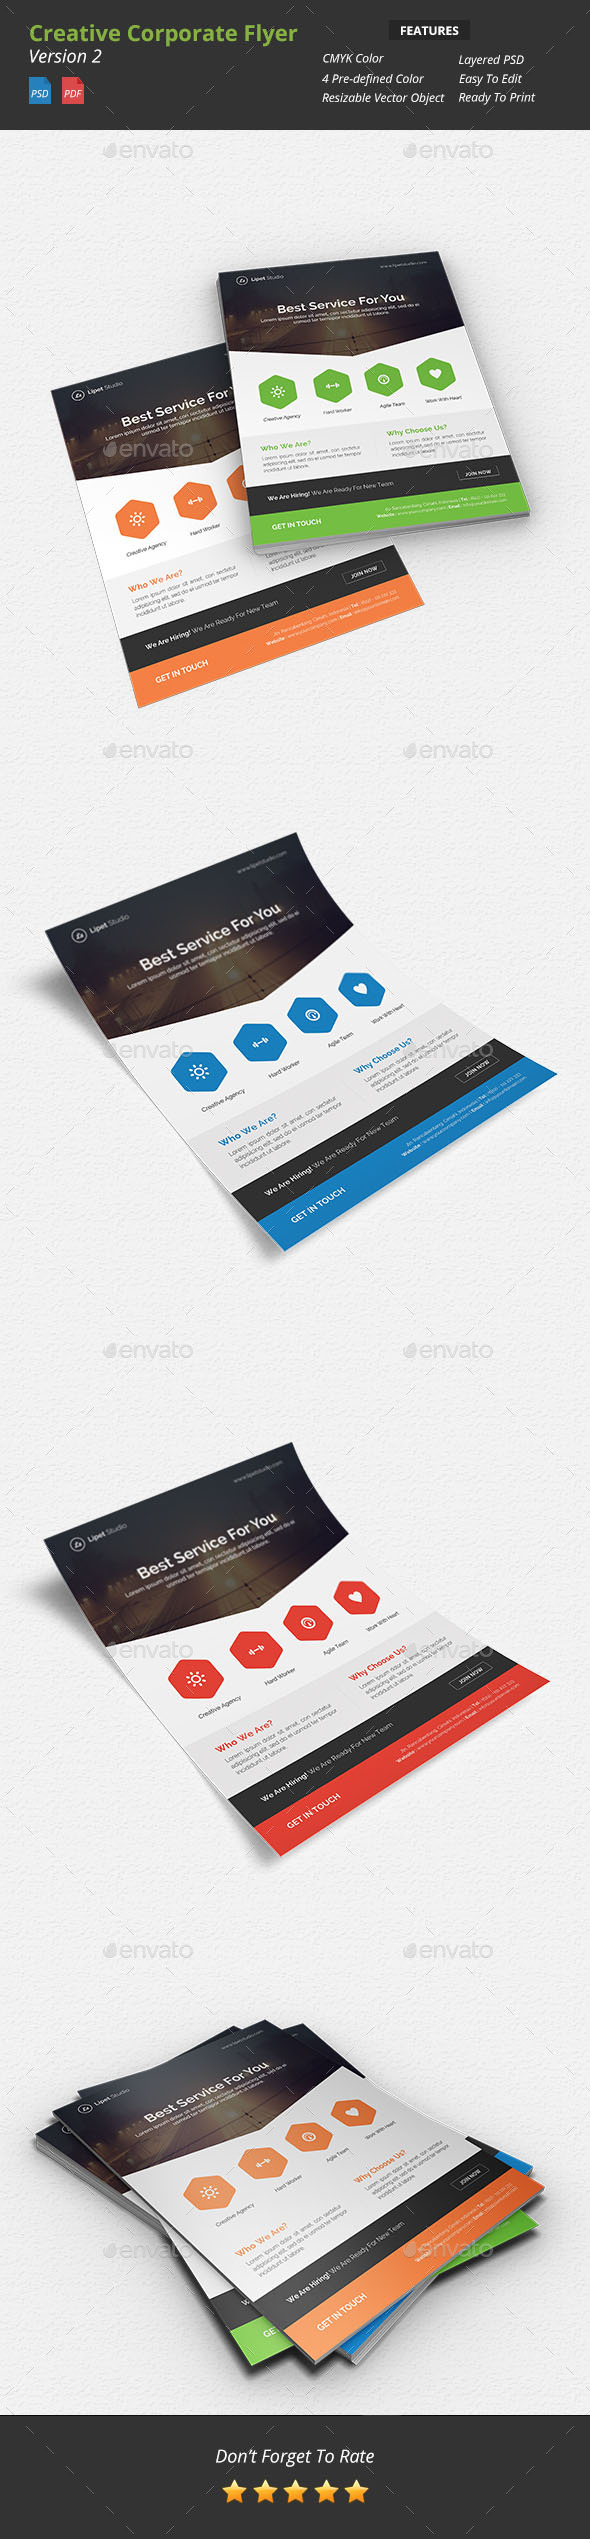 Creative Corporate Flyer v2 - Corporate Flyers